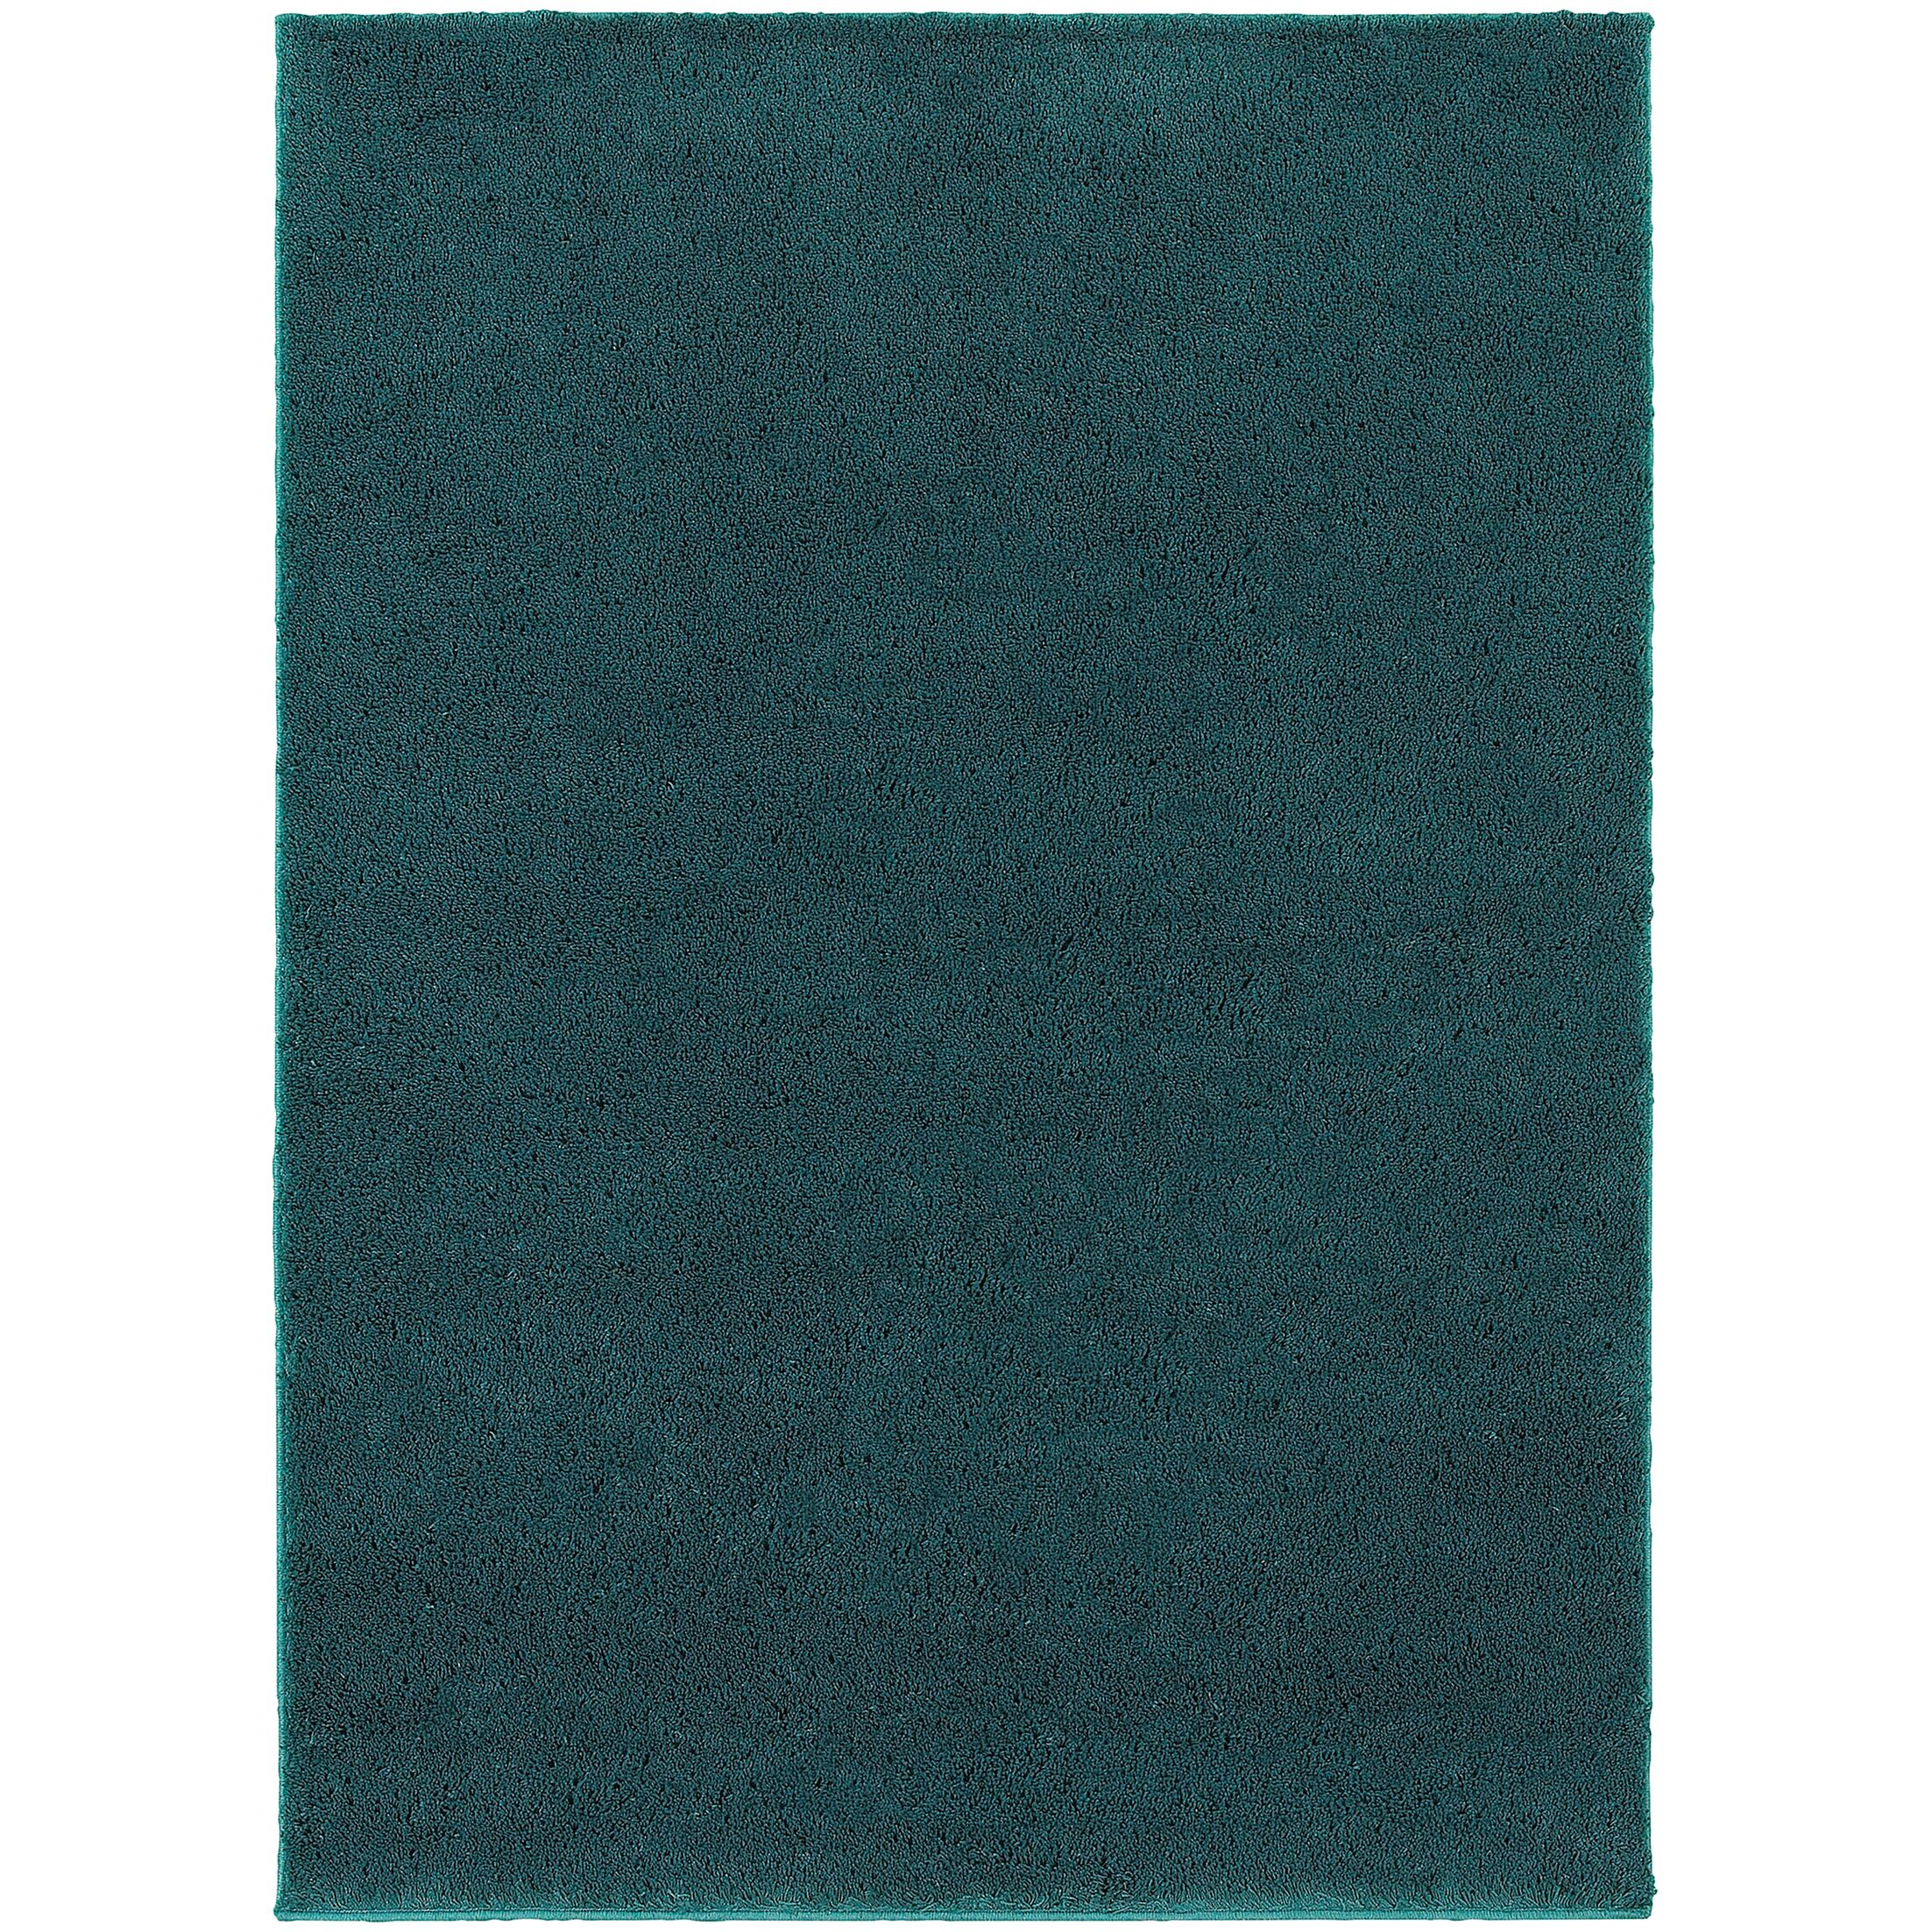 Hanson Teal Area Rug Rug Size: Rectangle 6'7